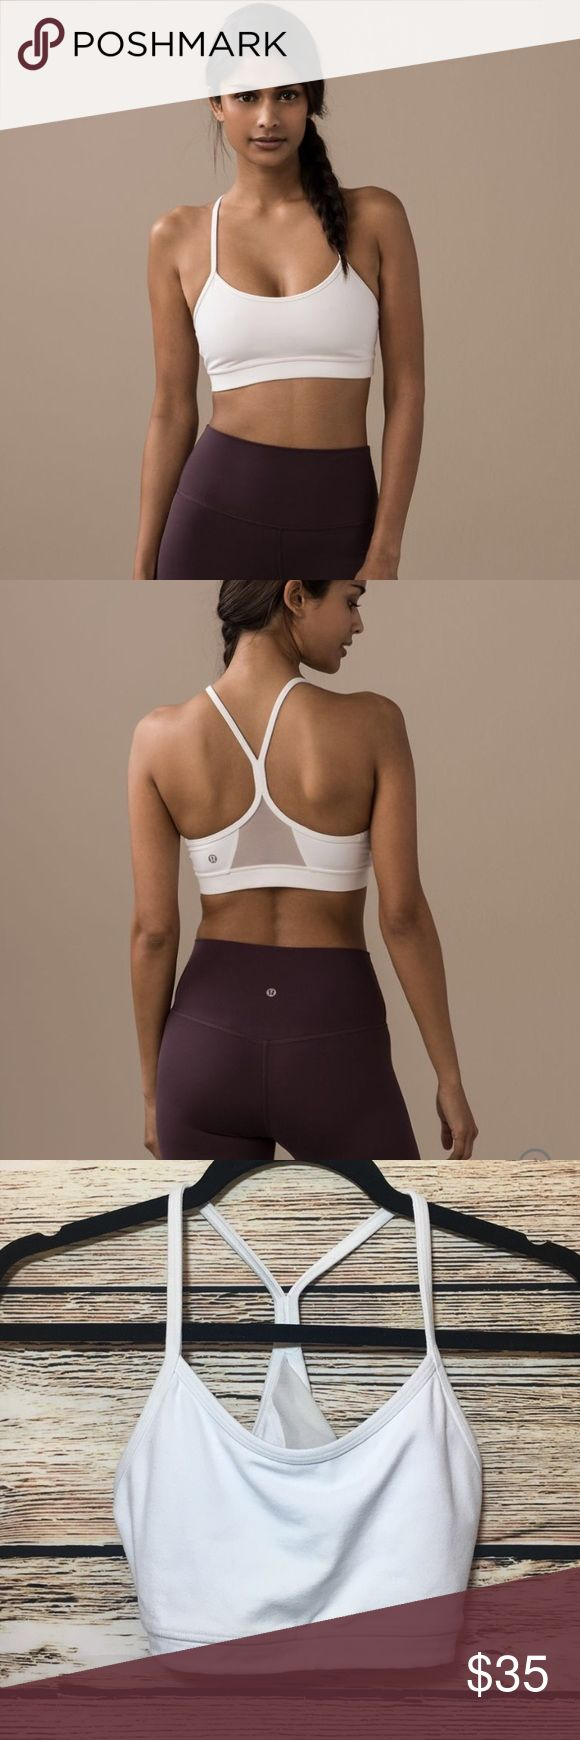 Lulu 🍋 Flow Y Sports Bra - size 6 White sports bra from lululemon in size 6 - good condition but I am between a 4-6 in lulu and this was a little big. No padding included. lululemon athletica Intimates & Sleepwear Bras